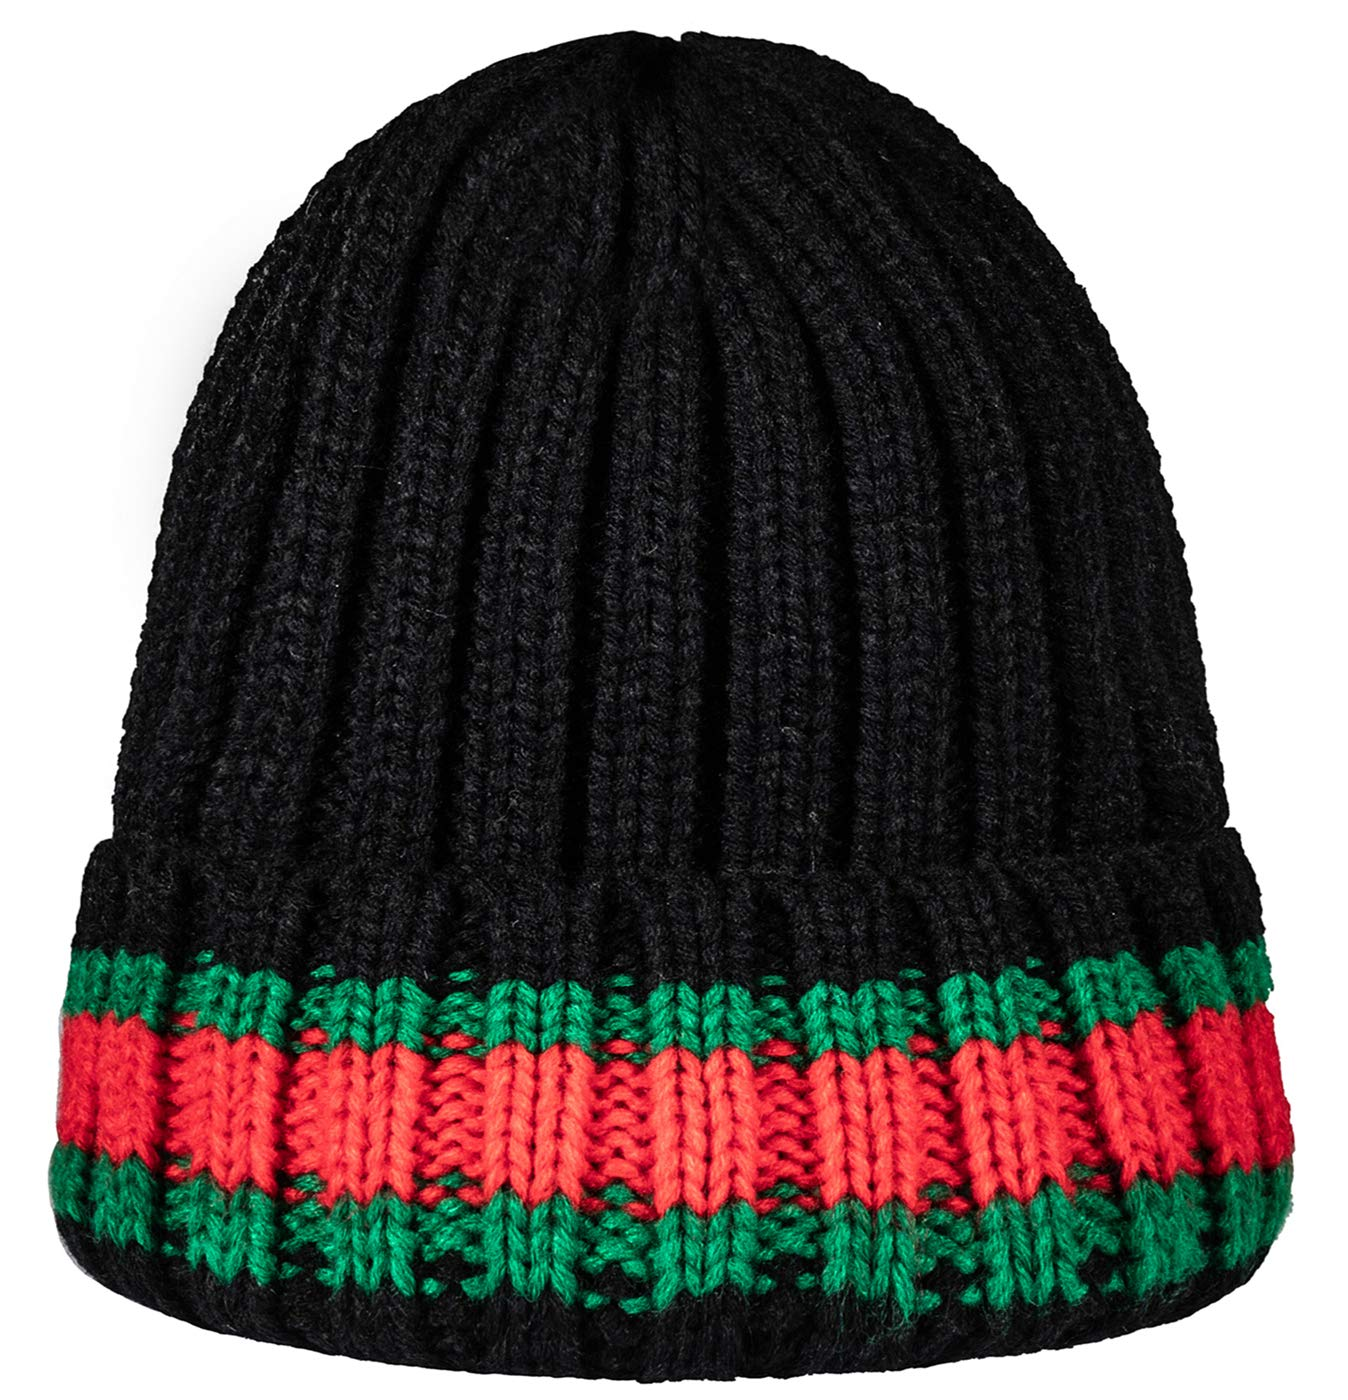 dd16703eeeb GreatParagon Winter Hats for Men Knit Hat Beanie Slouchy Hats Skull Cap  Thick Fleece Lining product